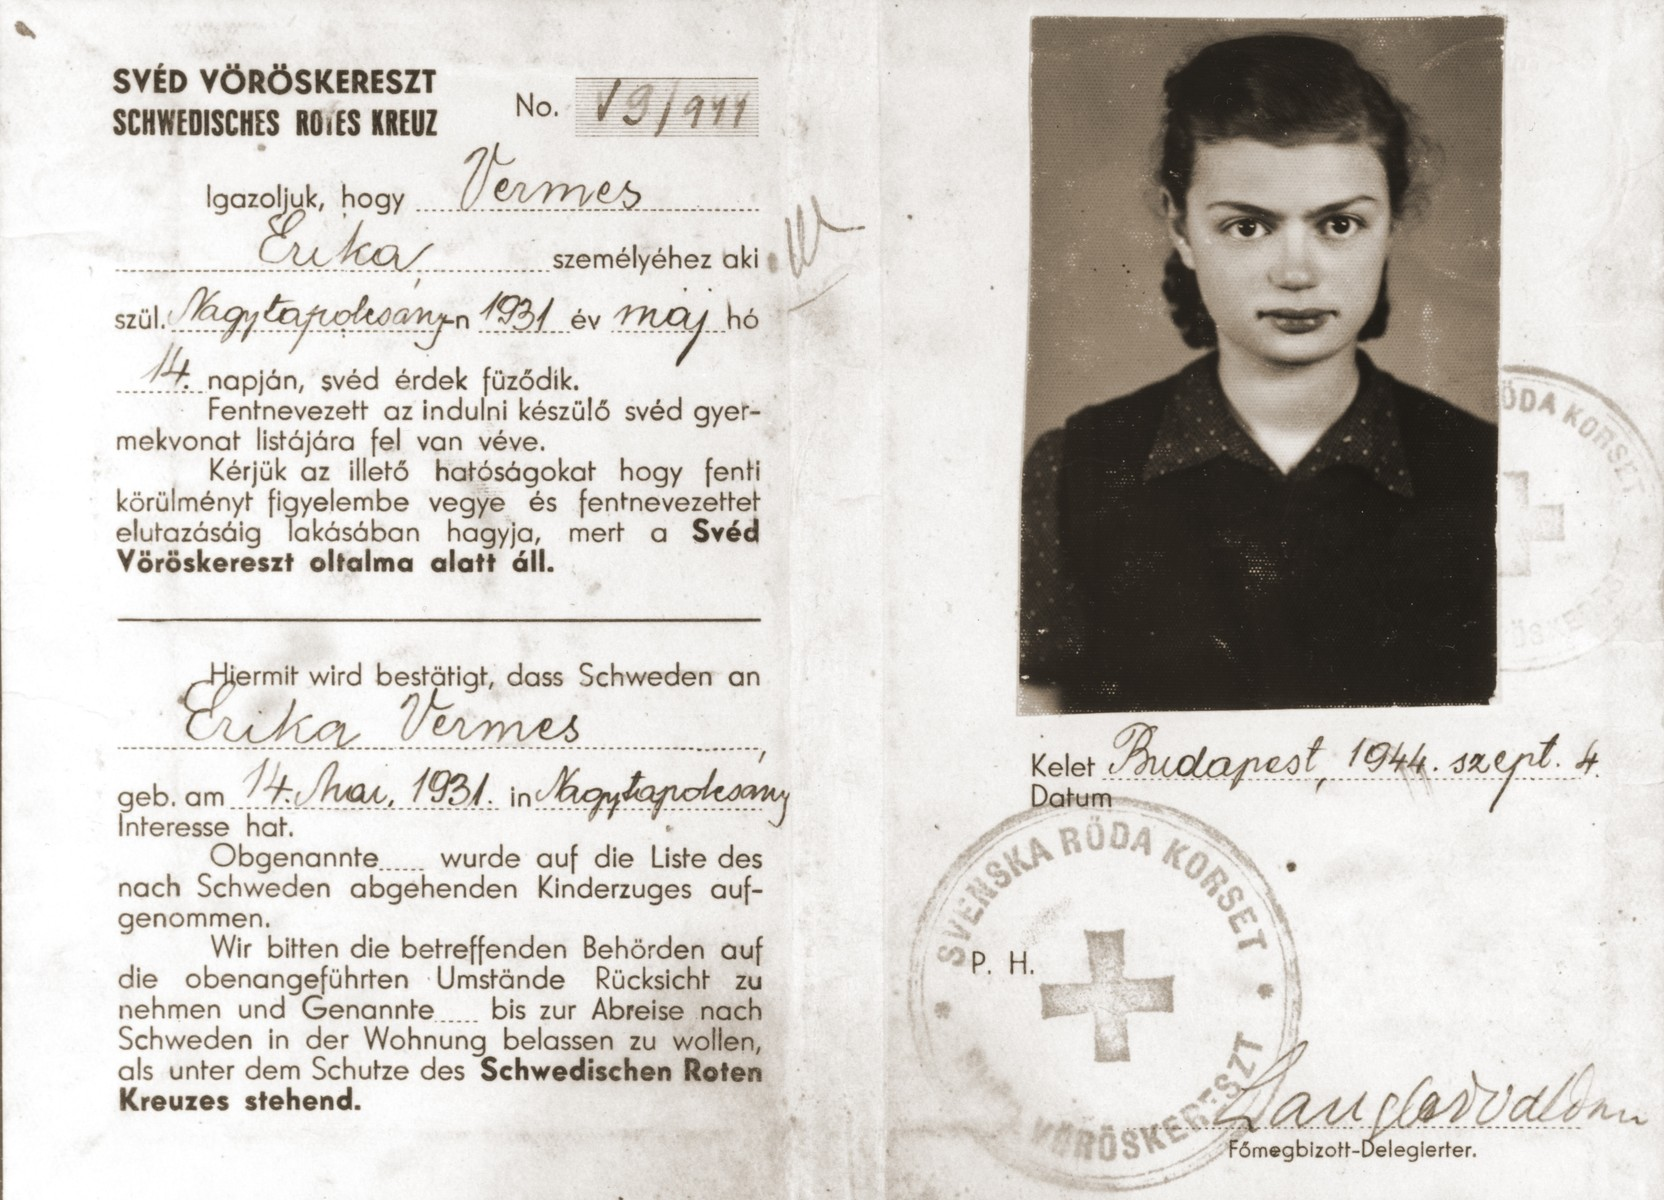 Protective document issued to Erika Vermes by the Swedish Red Cross.  The document states that Erika's name appears on the passenger list of a Swedish children's transport that is about to leave Hungary and appeals to the authorities to let her remain at her current residence until the time of her departure.